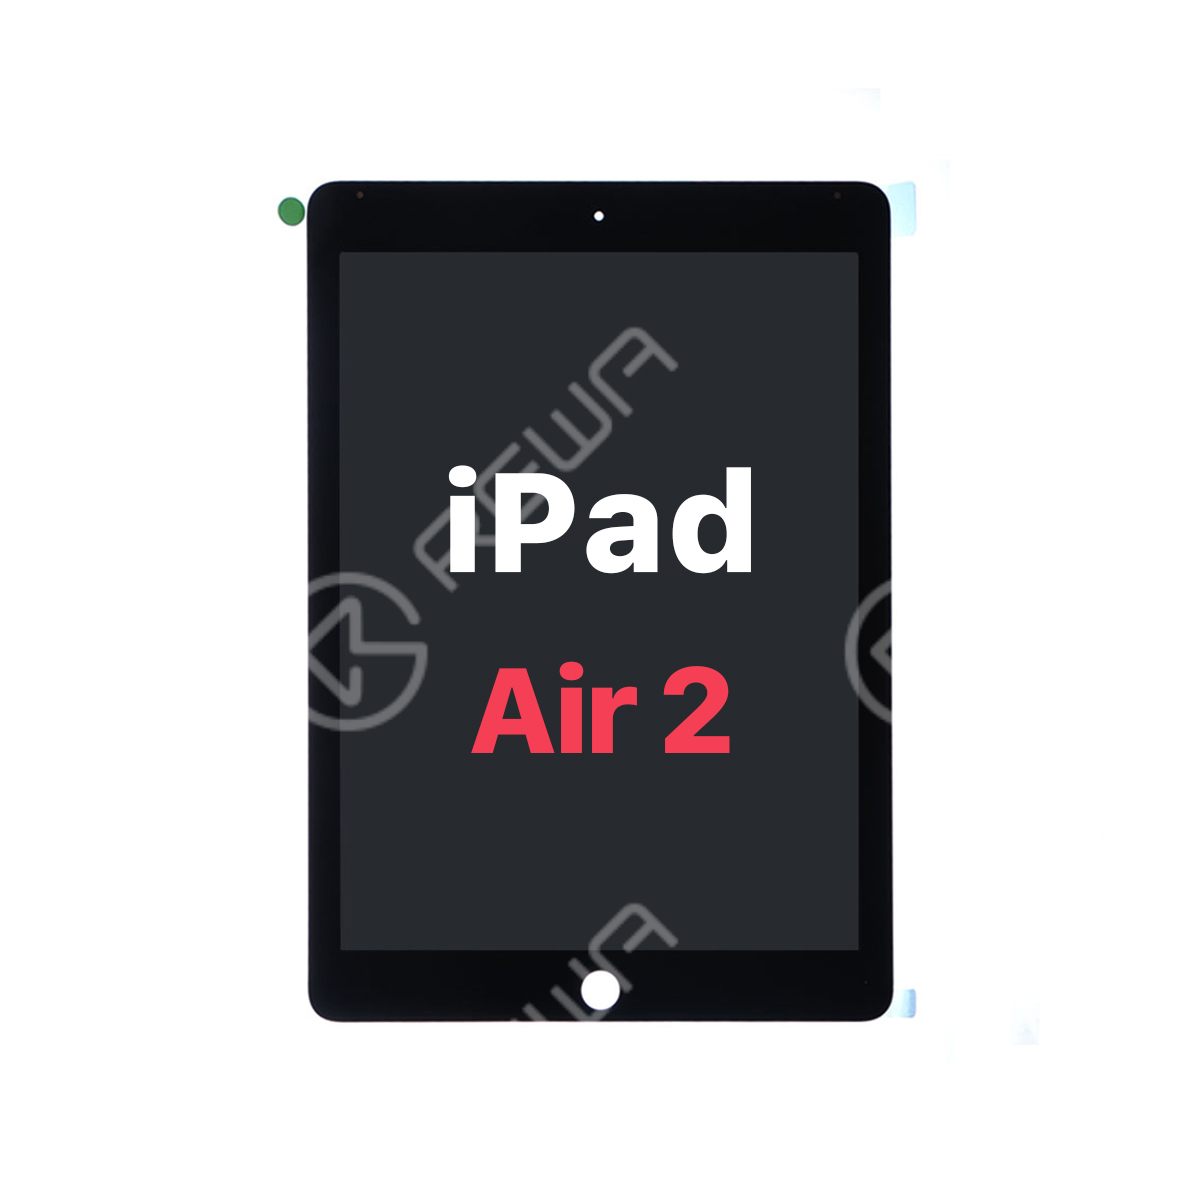 For Apple iPad Air 2 LCD Touch Screen Digitizer Assembly with Dormancy Flex Cable